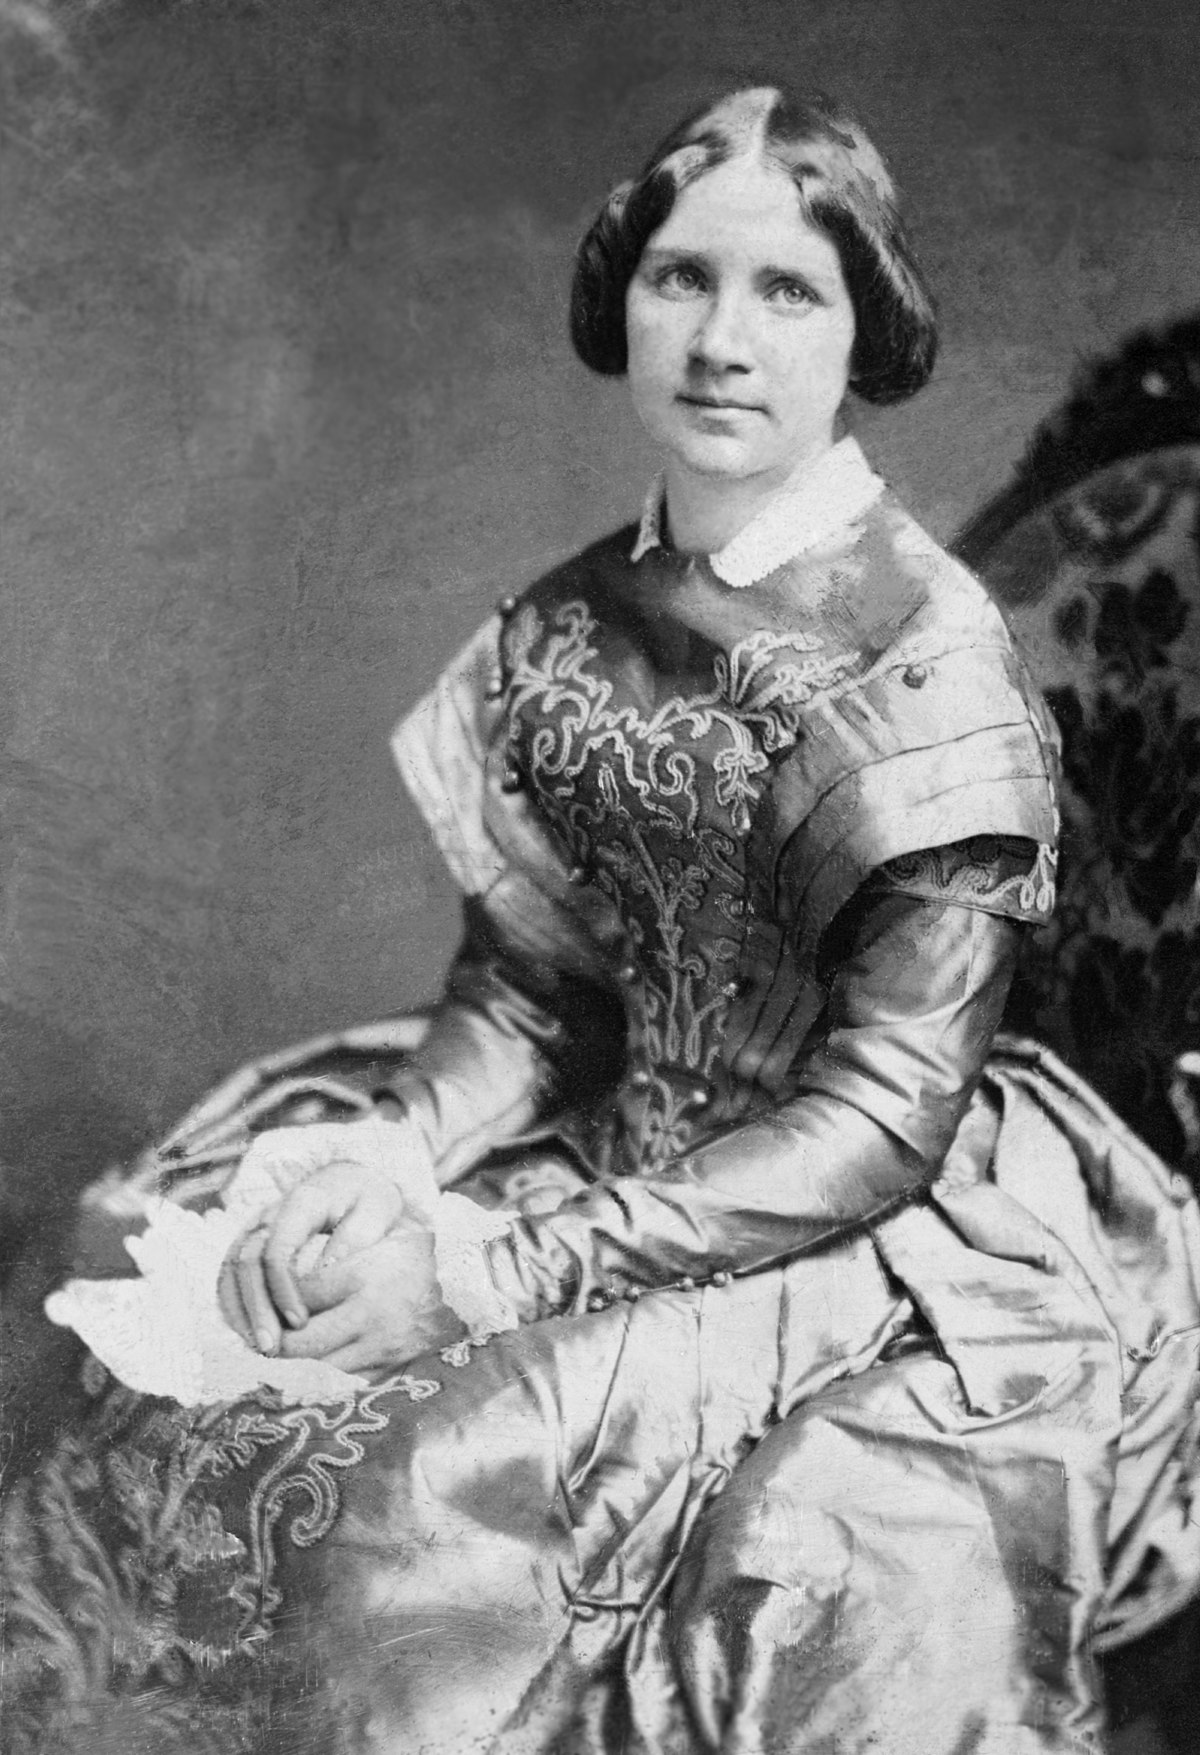 A black and white portrait of Jenny Lind.